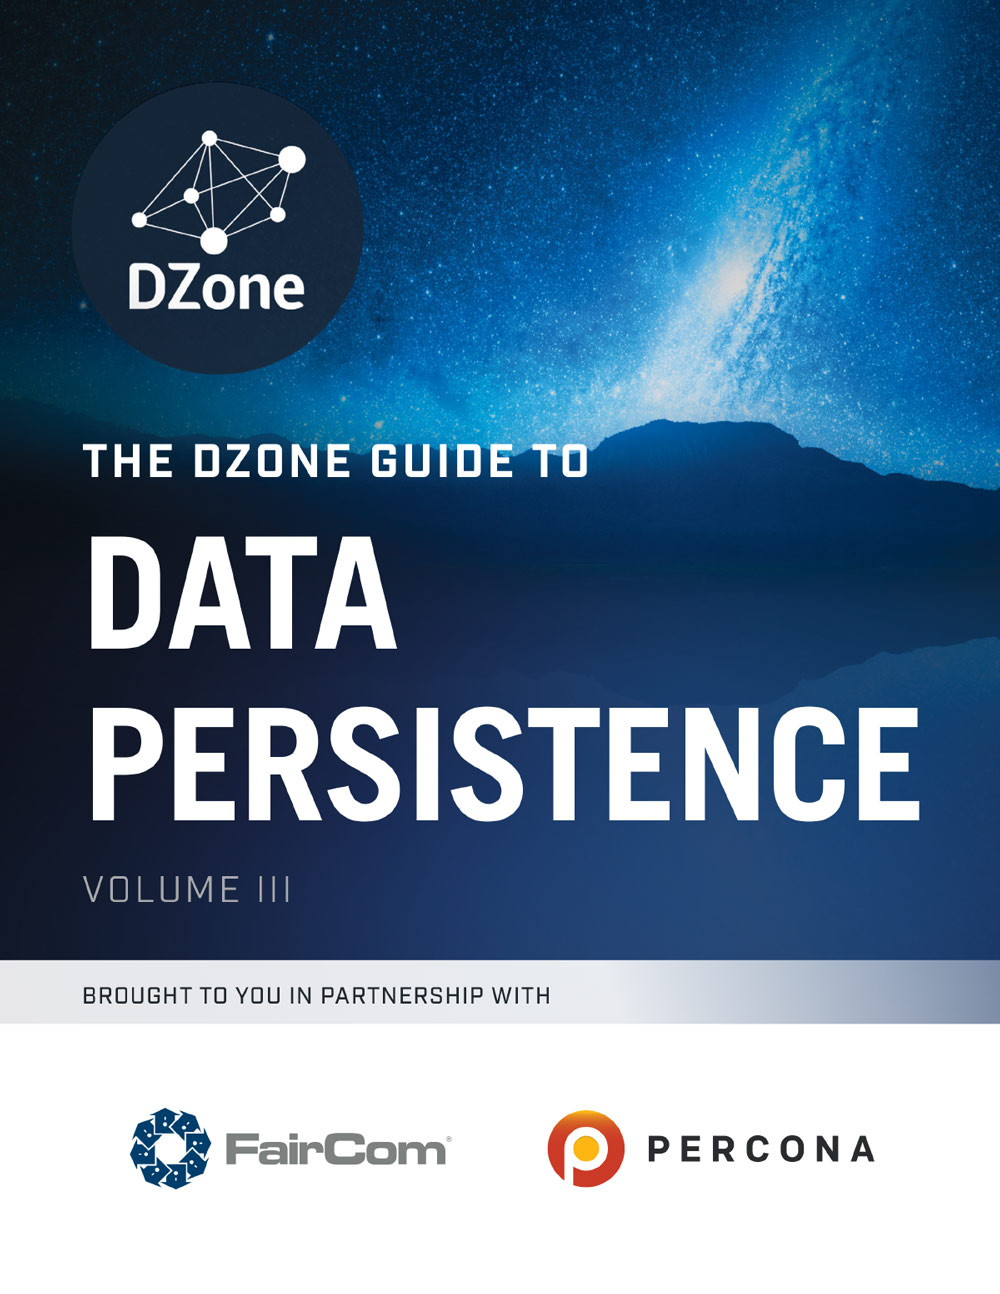 Database and Data Persistence Tools and Techniques  DZone  Research Guides